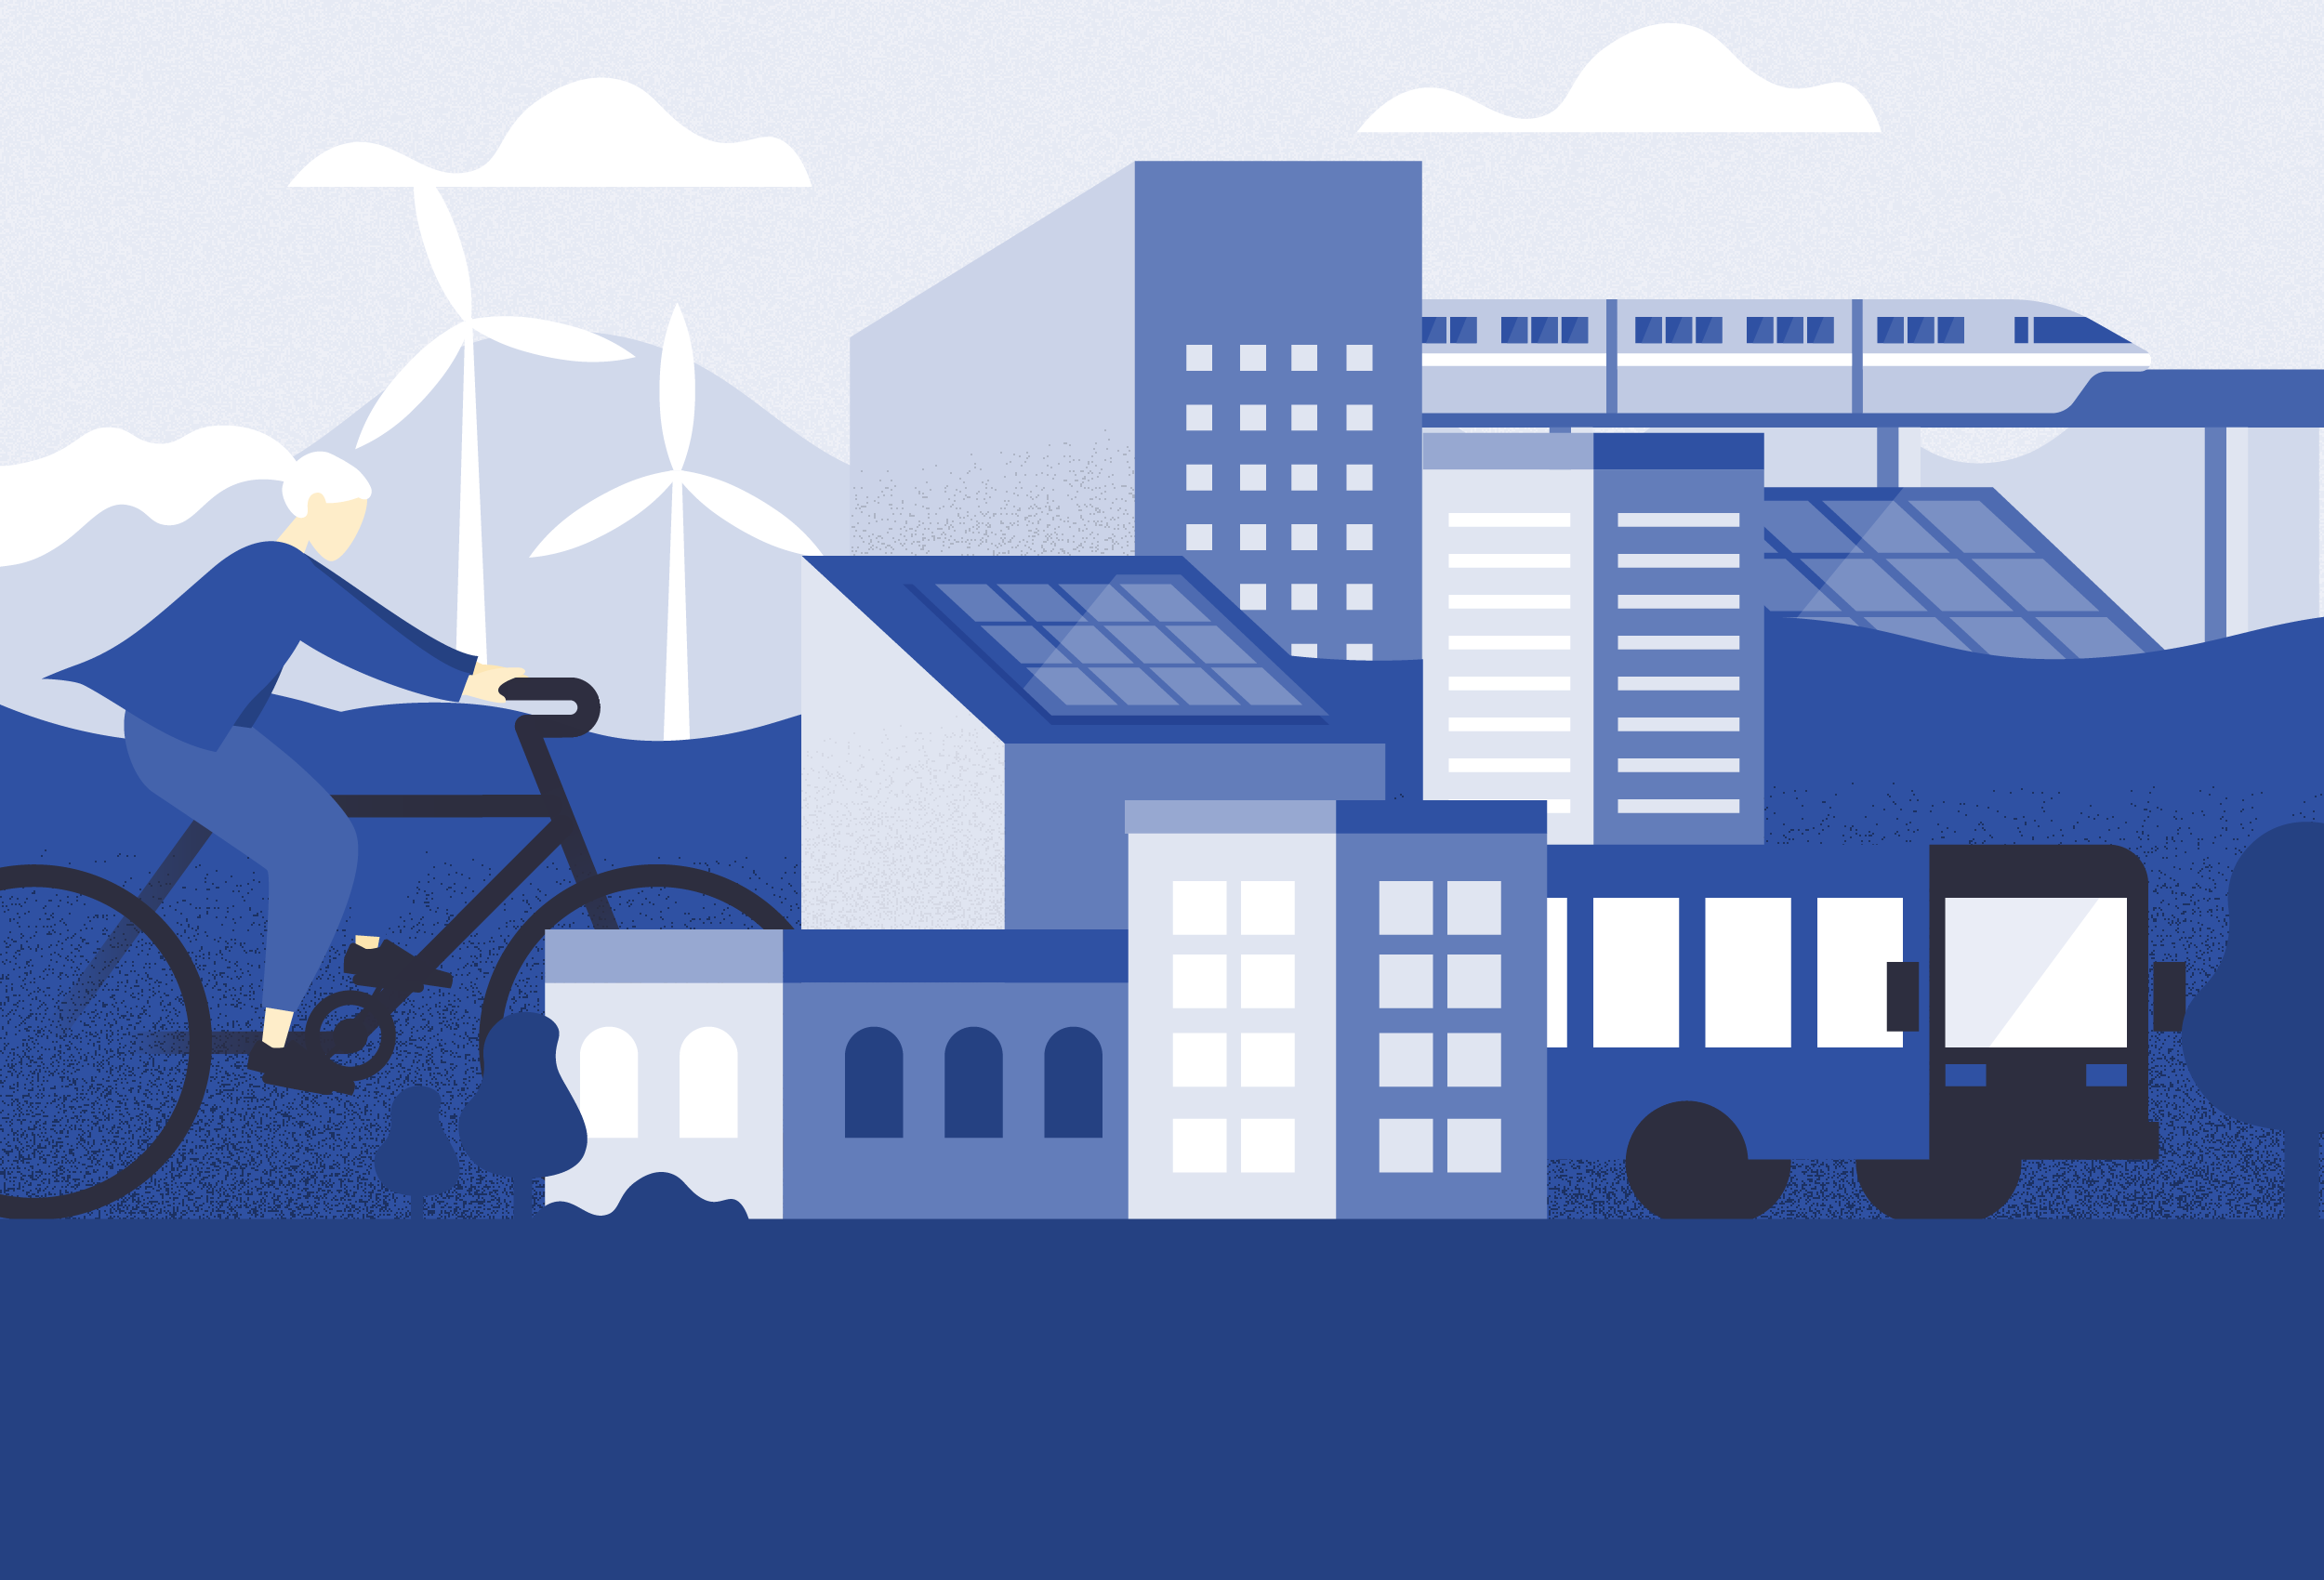 Clean energy sources in a city setting